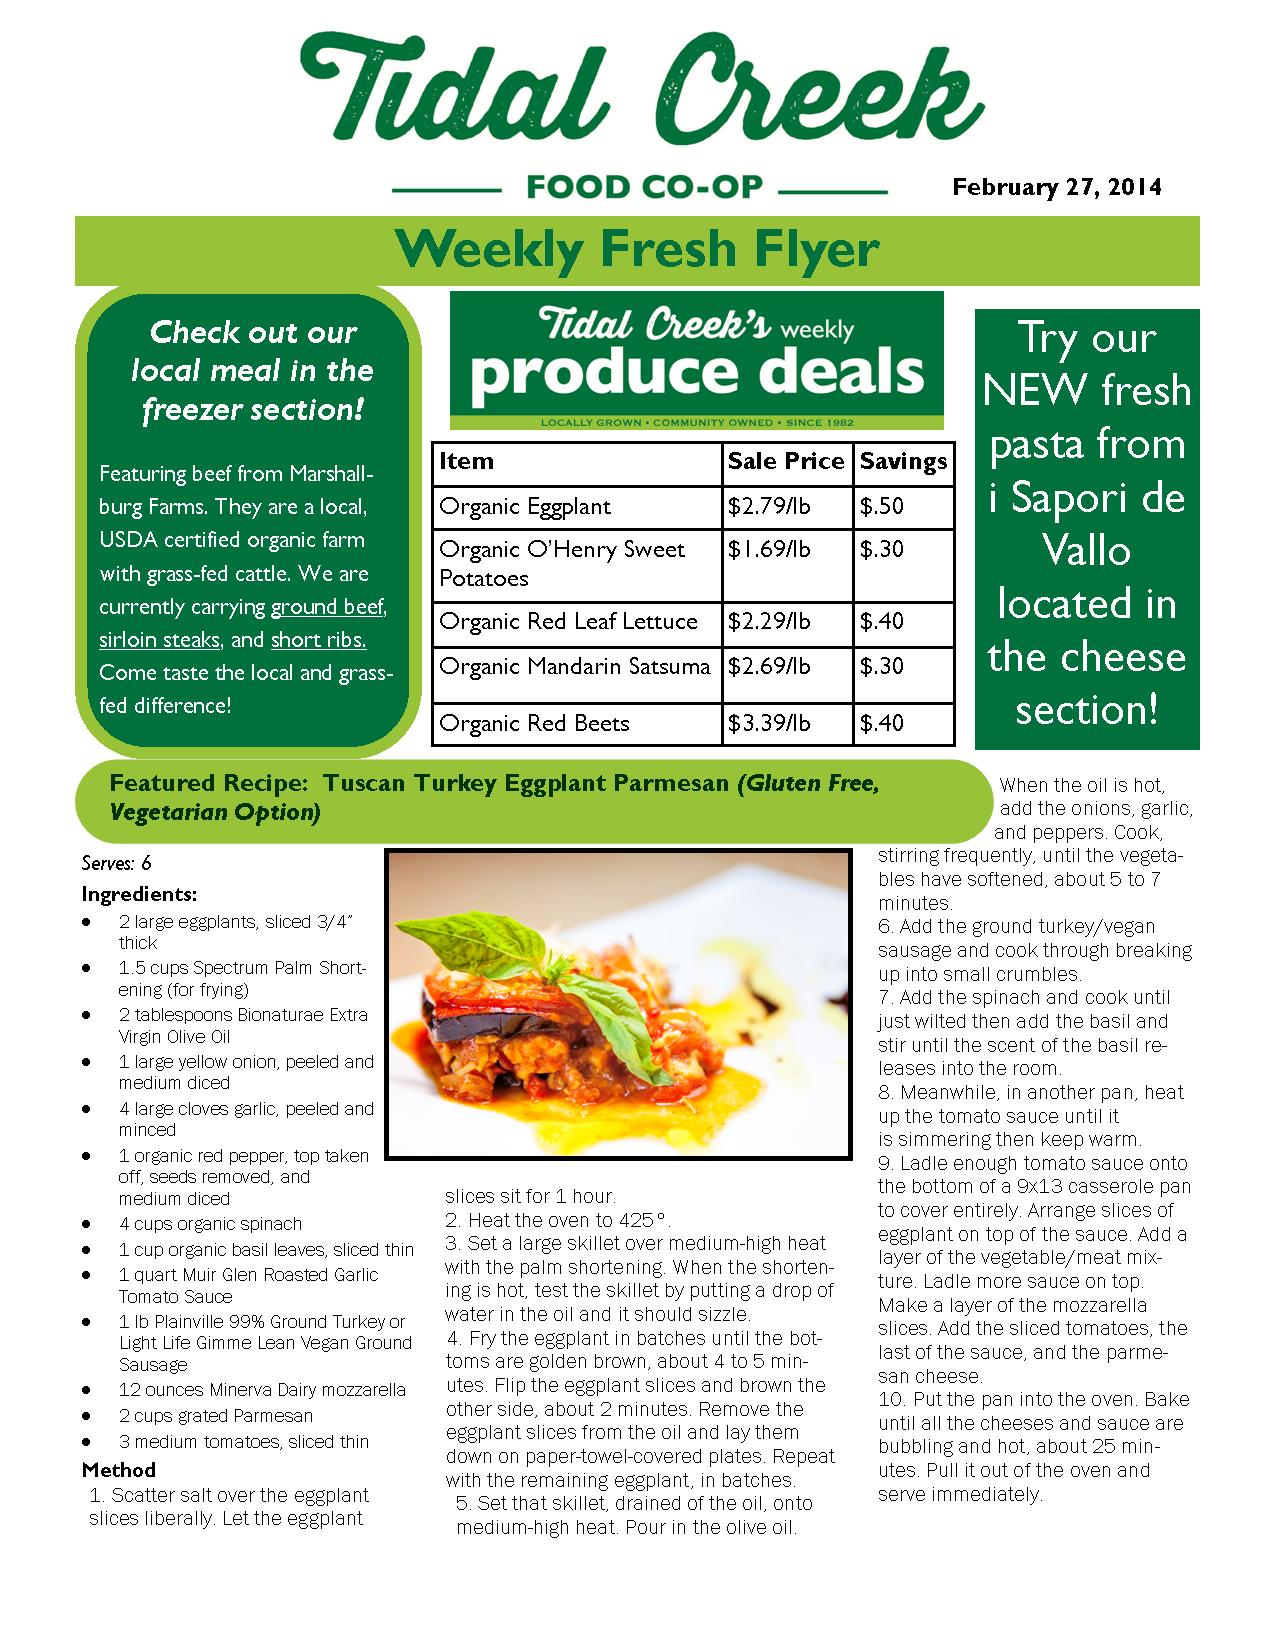 Sample Weekly Fresh Bytes